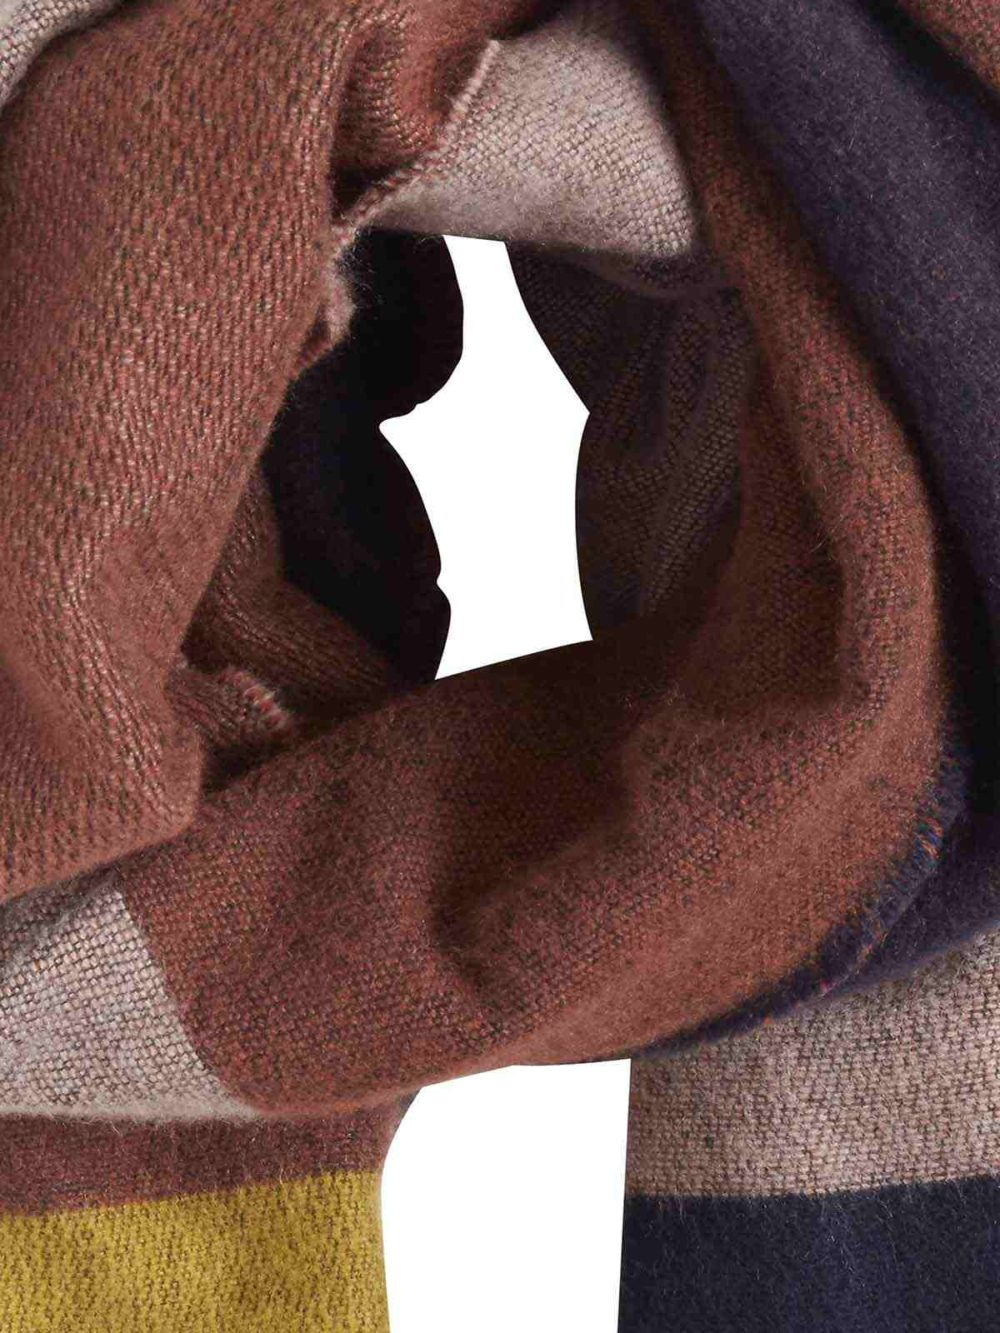 A Vicky Scarf ICHI Katie Kerr Women's Clothing